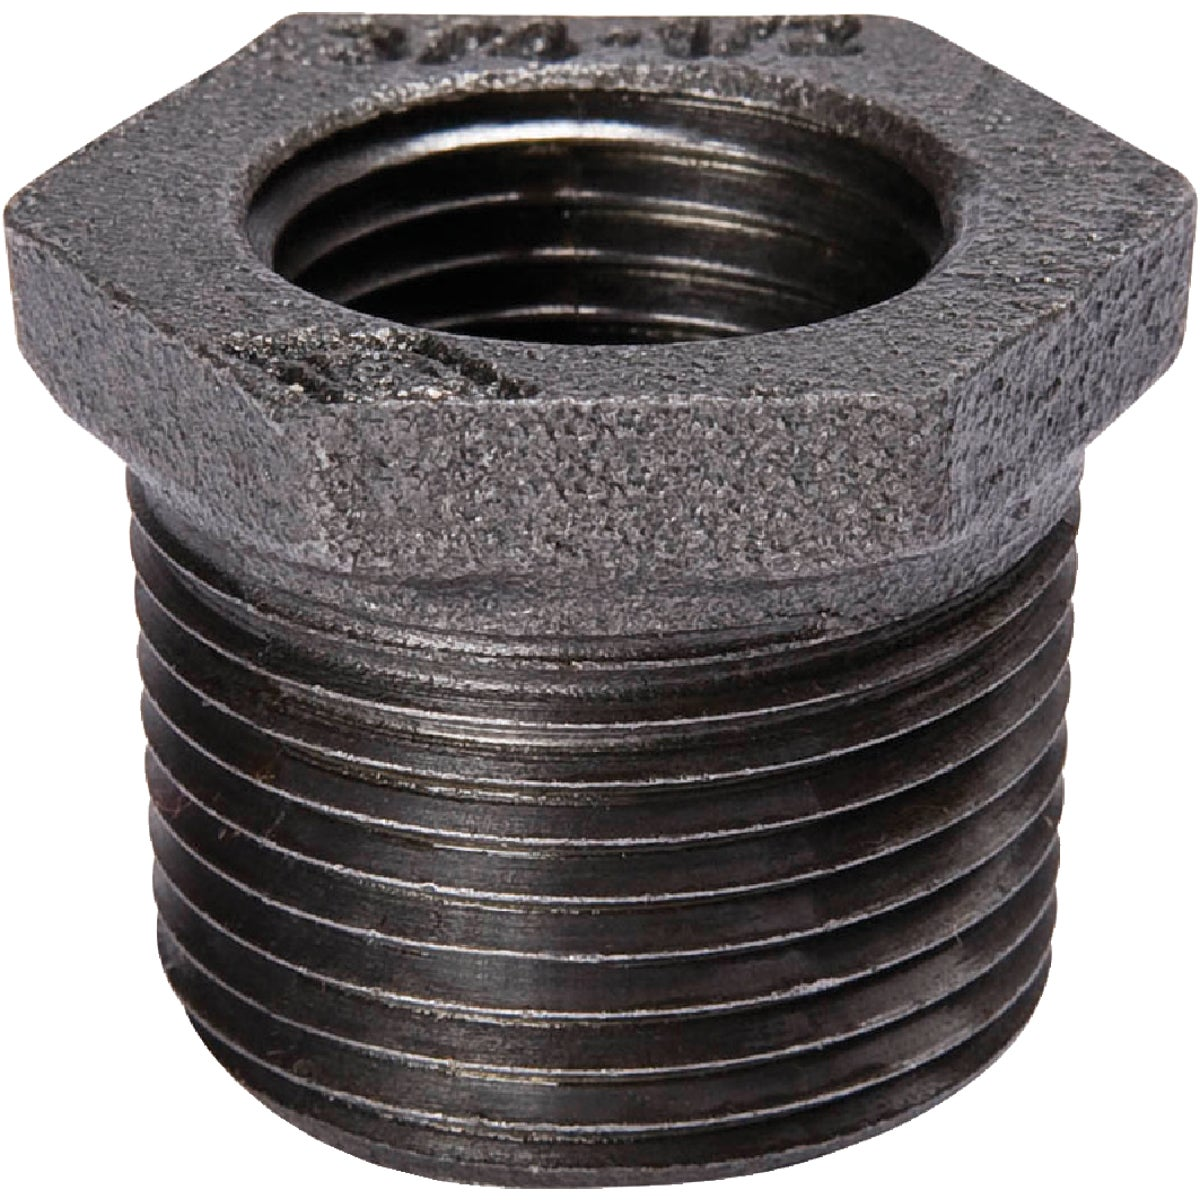 1/4X1/8 BLACK BUSHING - 521-910HC by Mueller B K